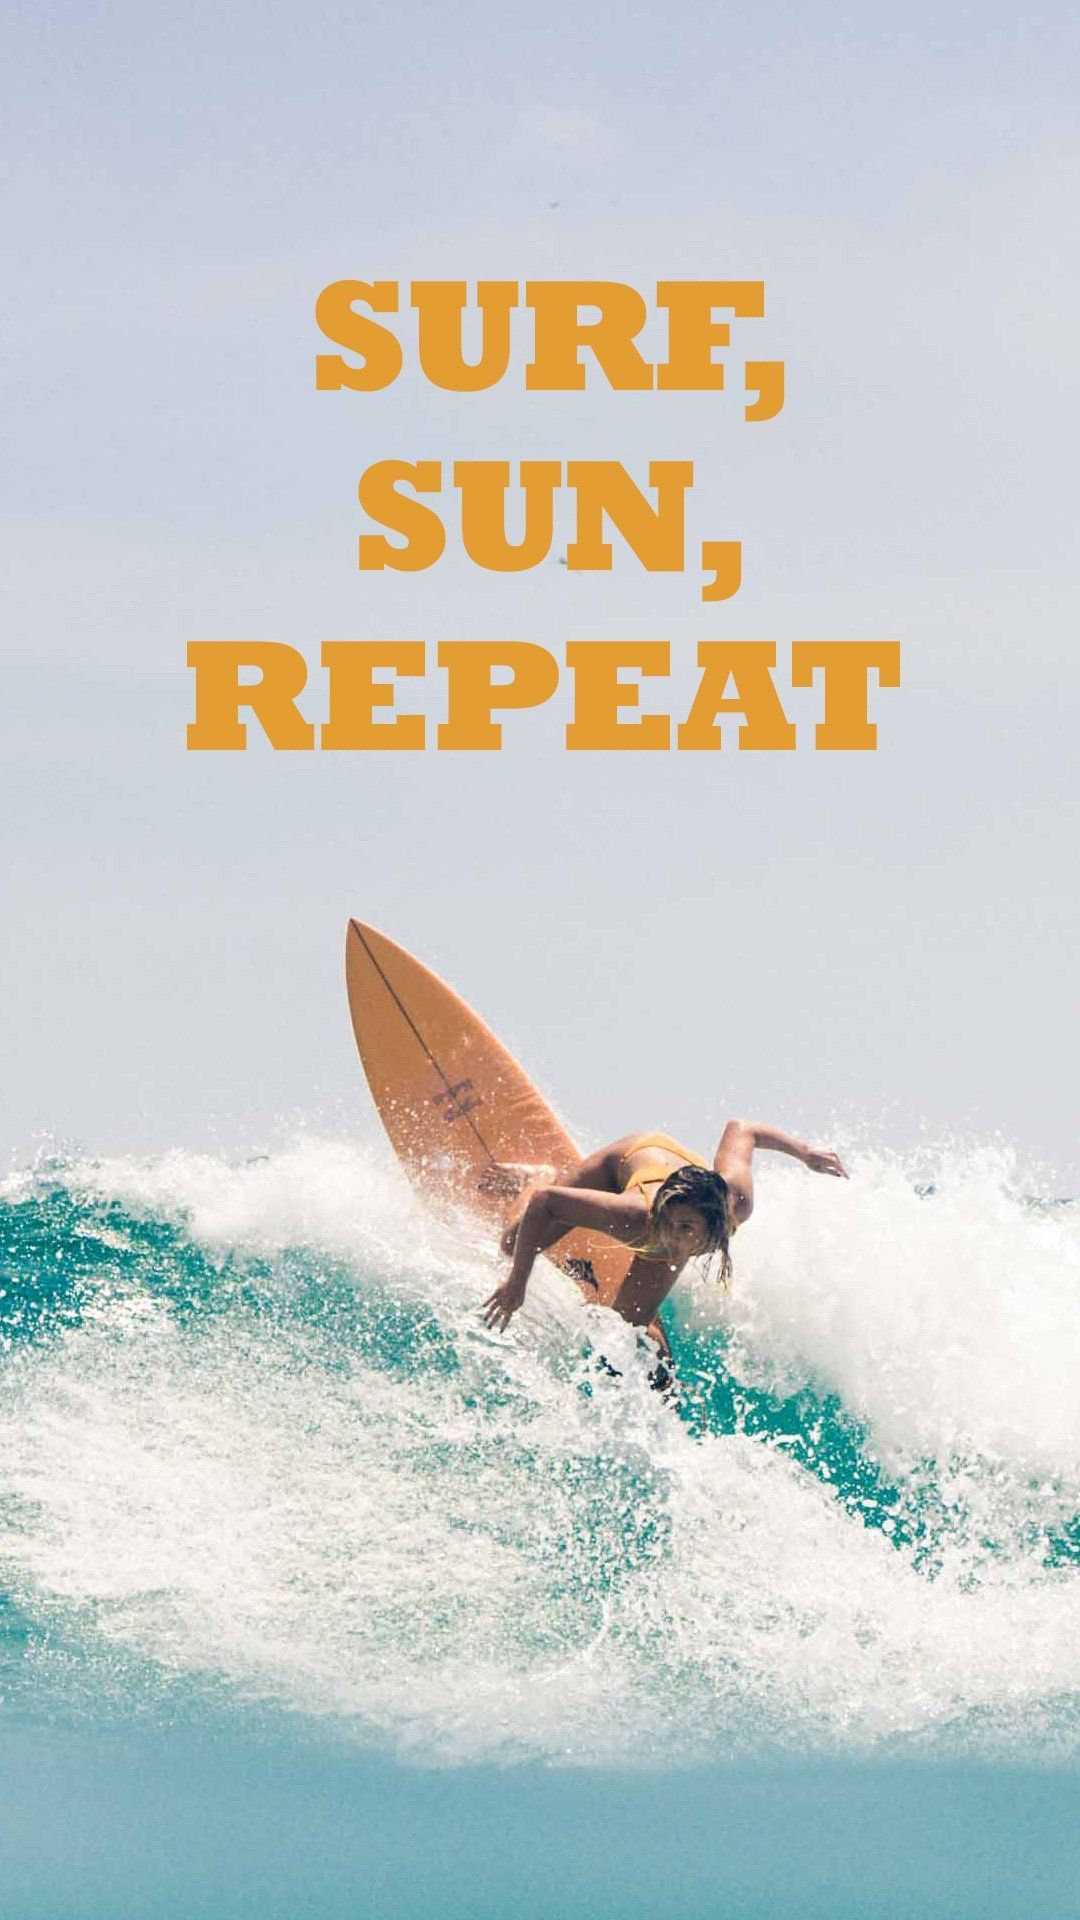 Repeat Surf Sunsurf Sun Repeat Surfing Surfing Pictures Ocean Surf